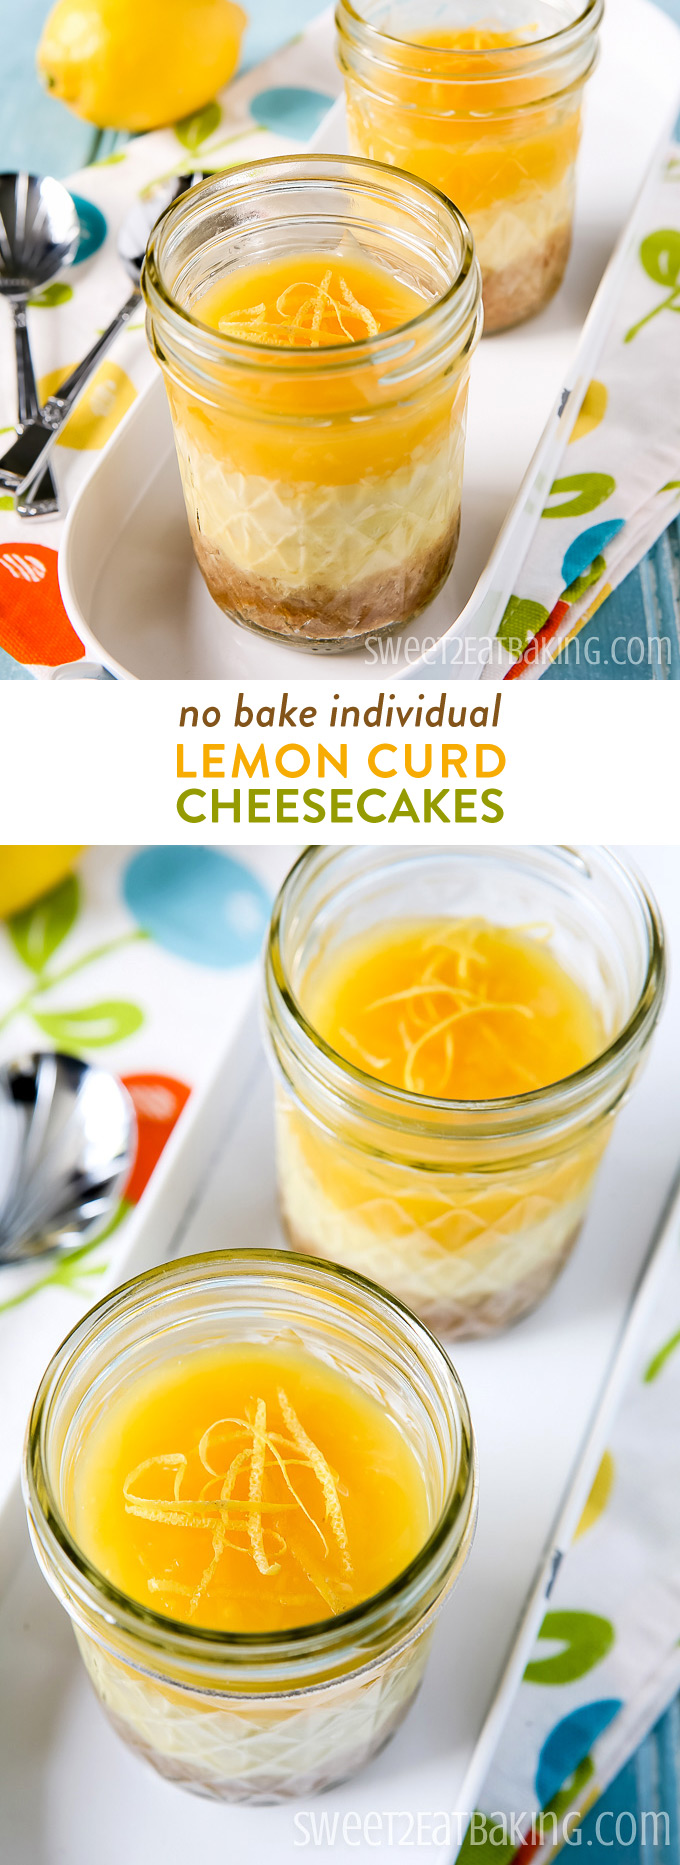 No Bake Individual Lemon Curd Cheesecakes Recipe by Sweet2EatBaking.com | These individual Lemon Curd Cheesecakes are so quick and easy to make. And can be made in around 5 minutes (excluding chilling time). Lemon curd cheesecakes are absolutely perfect for a refreshing treat this summer.